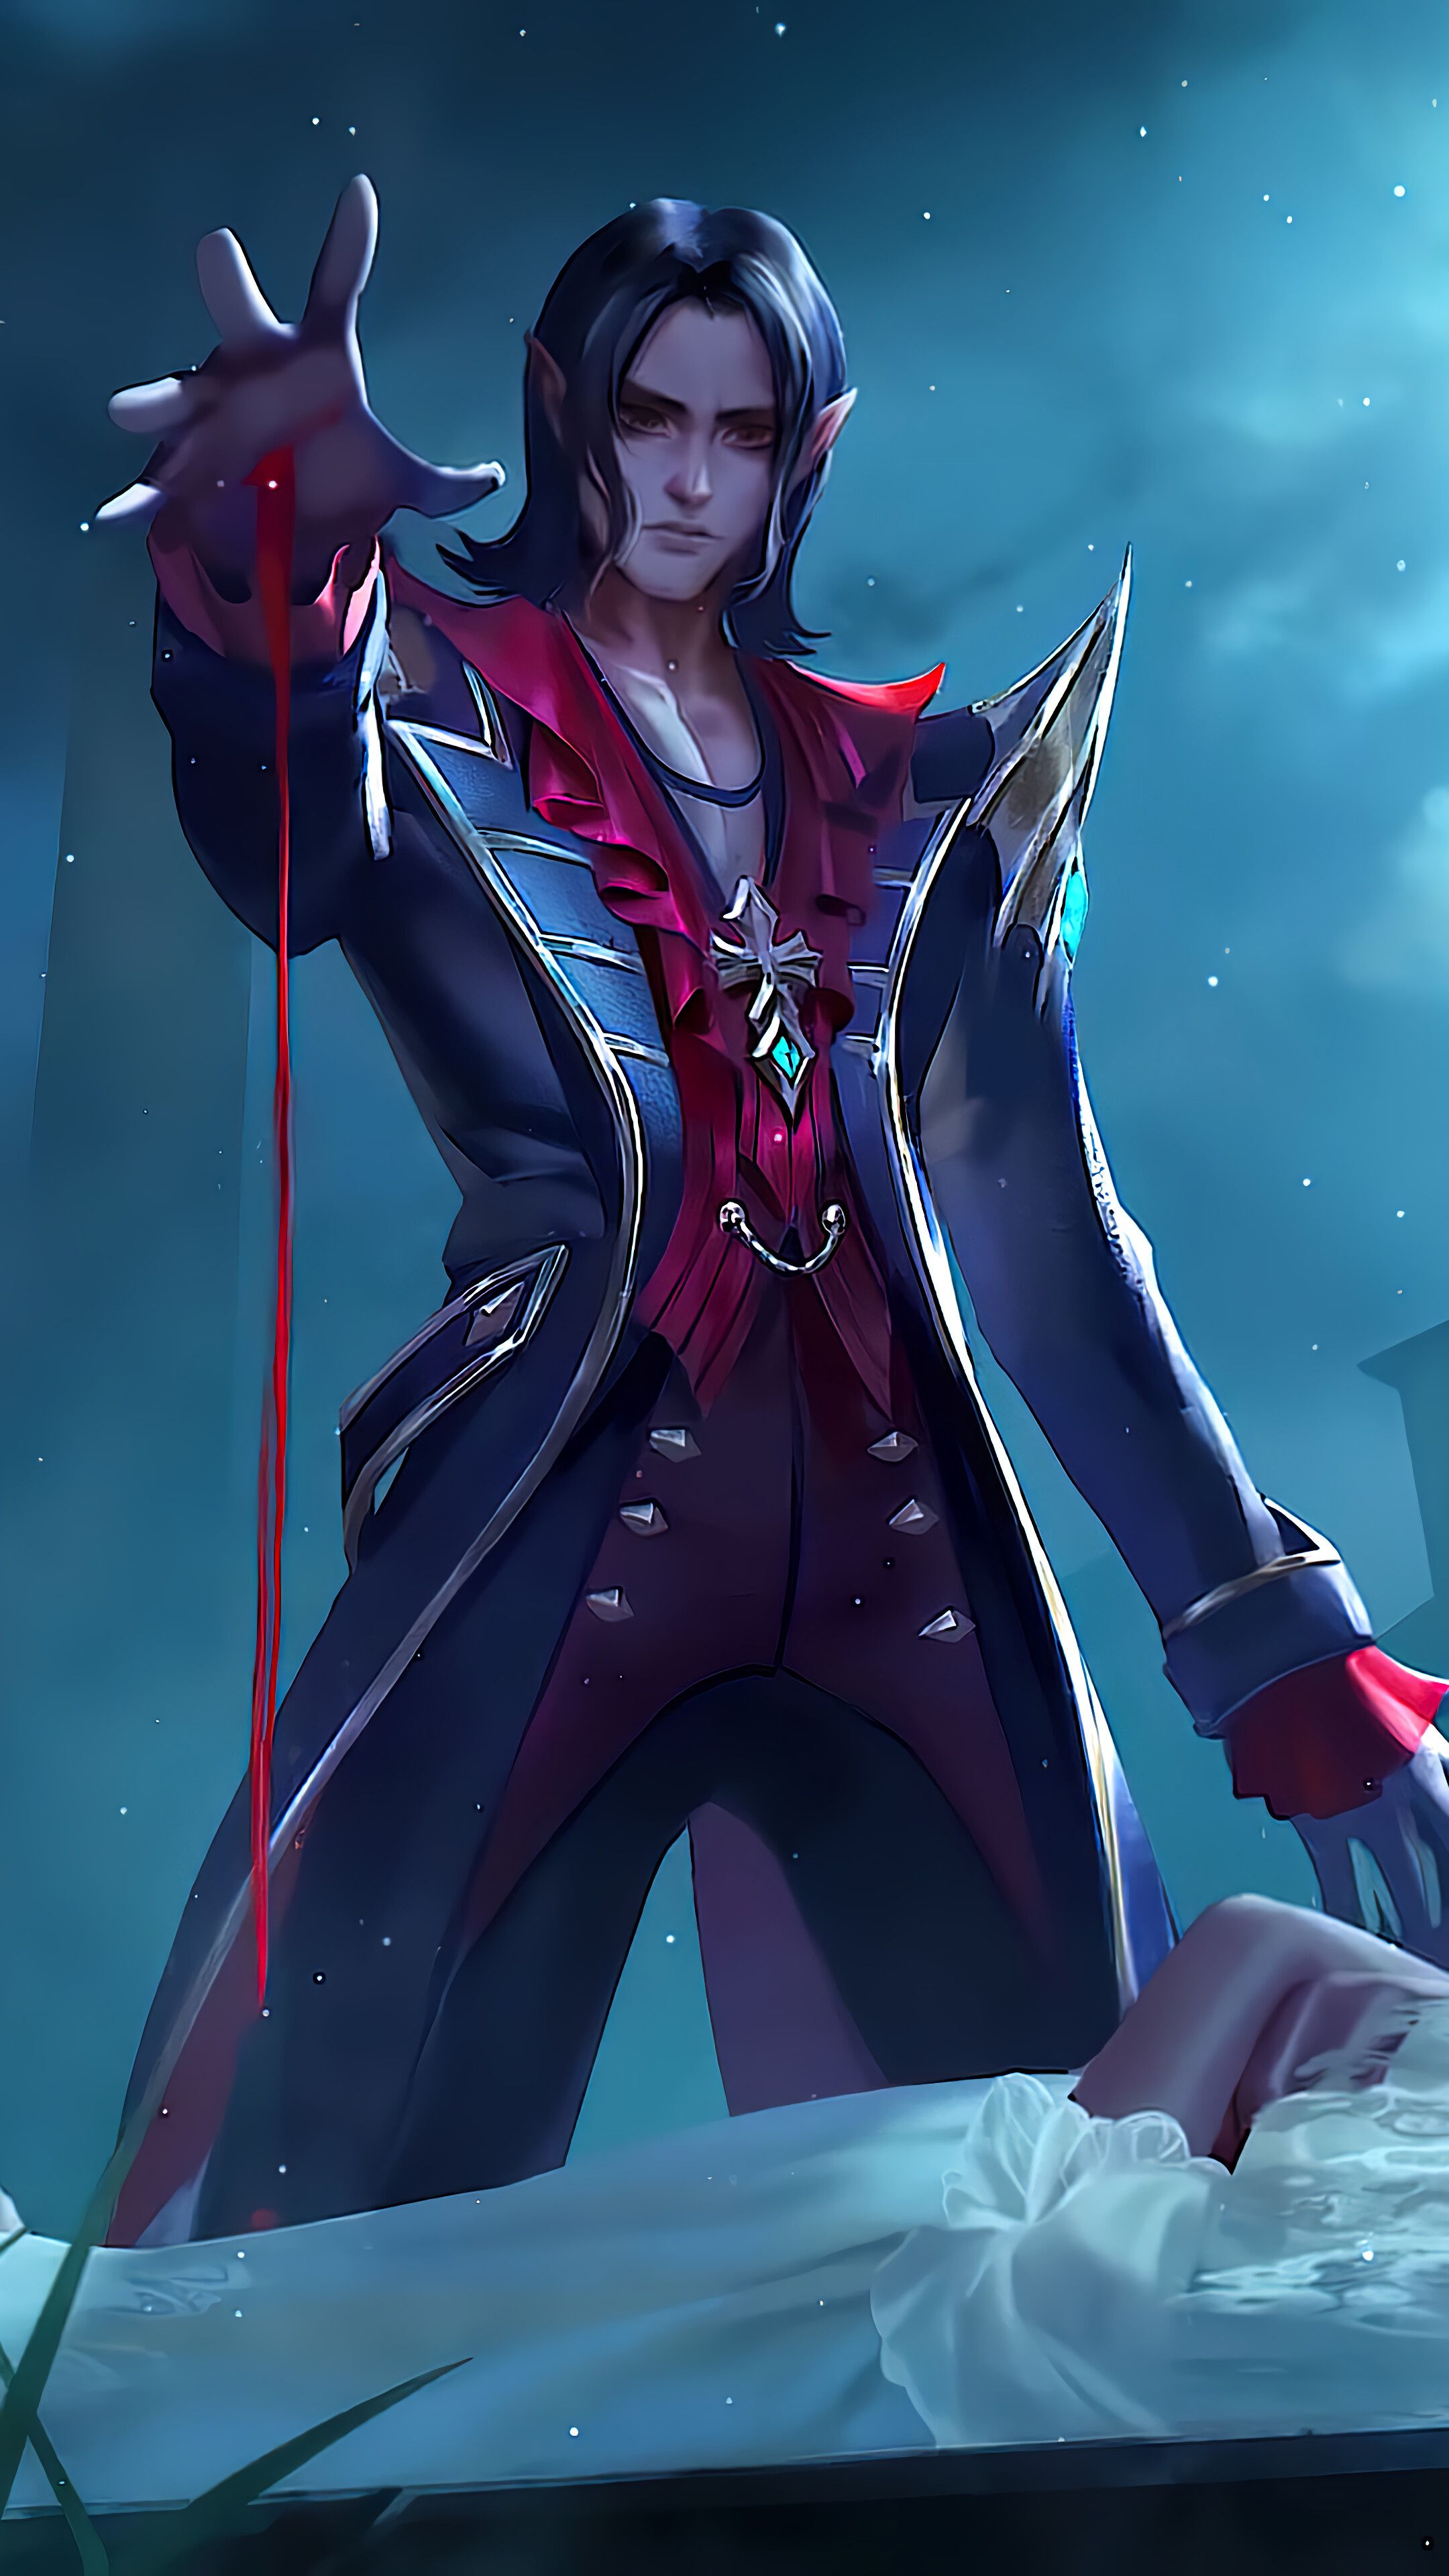 Cecilion Mobile Legends 4k Iphone 10 7 6s 6 Hd Wallpapers Images Backgrounds Photos And Pictures In 2020 Mobile Legend Wallpaper Mobile Legends Legend